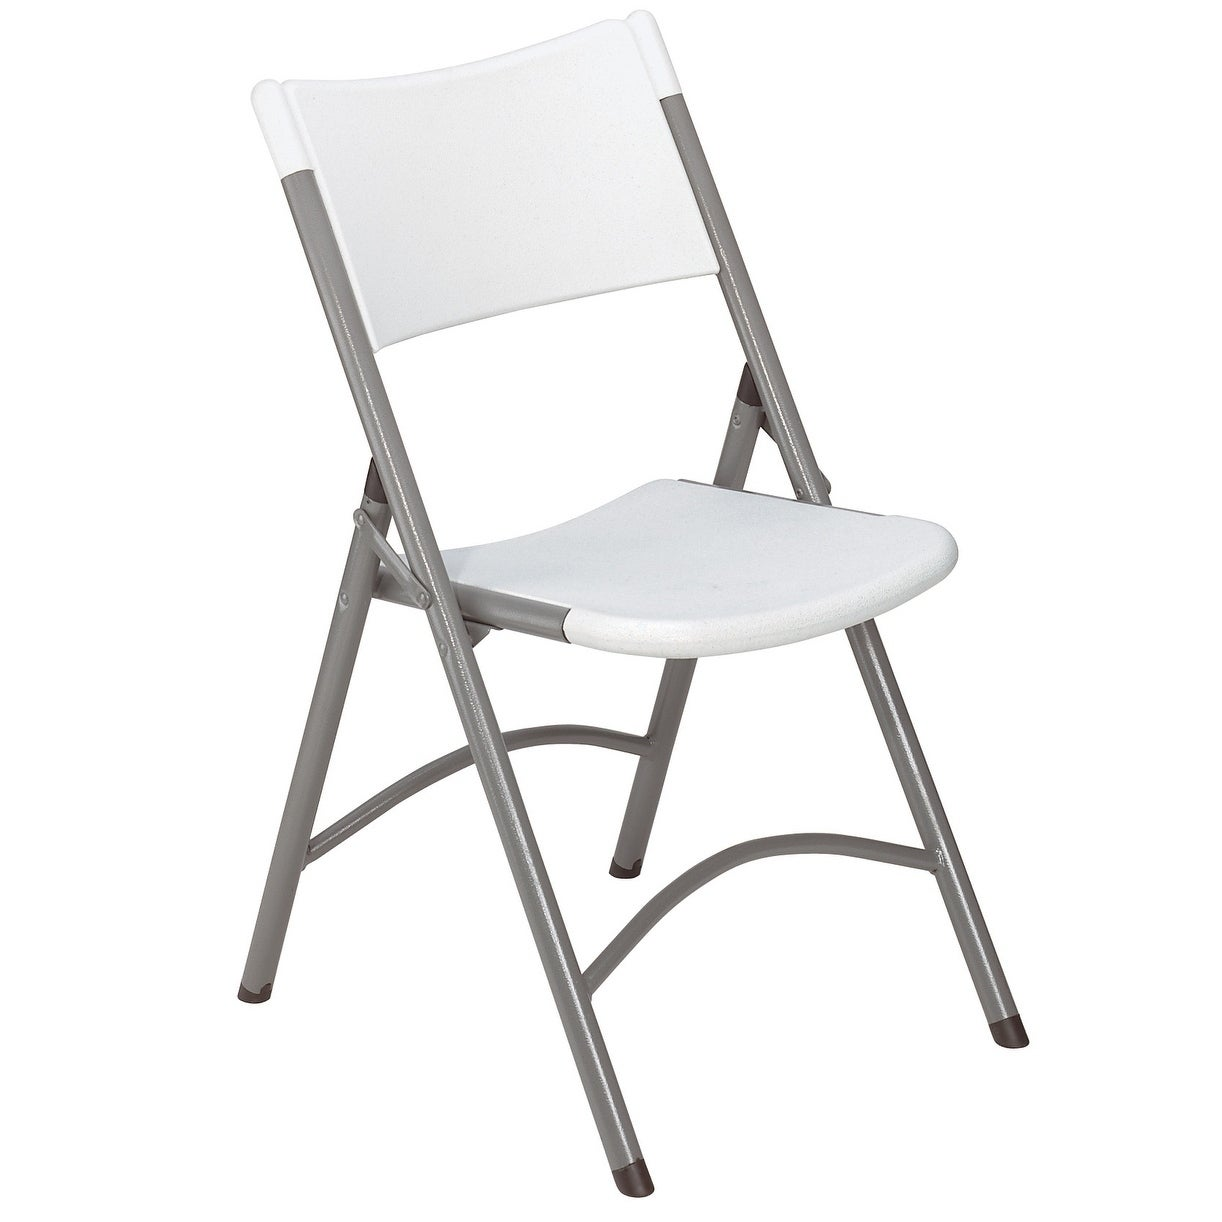 4 Pack Nps Heavy Duty Plastic Folding Chair